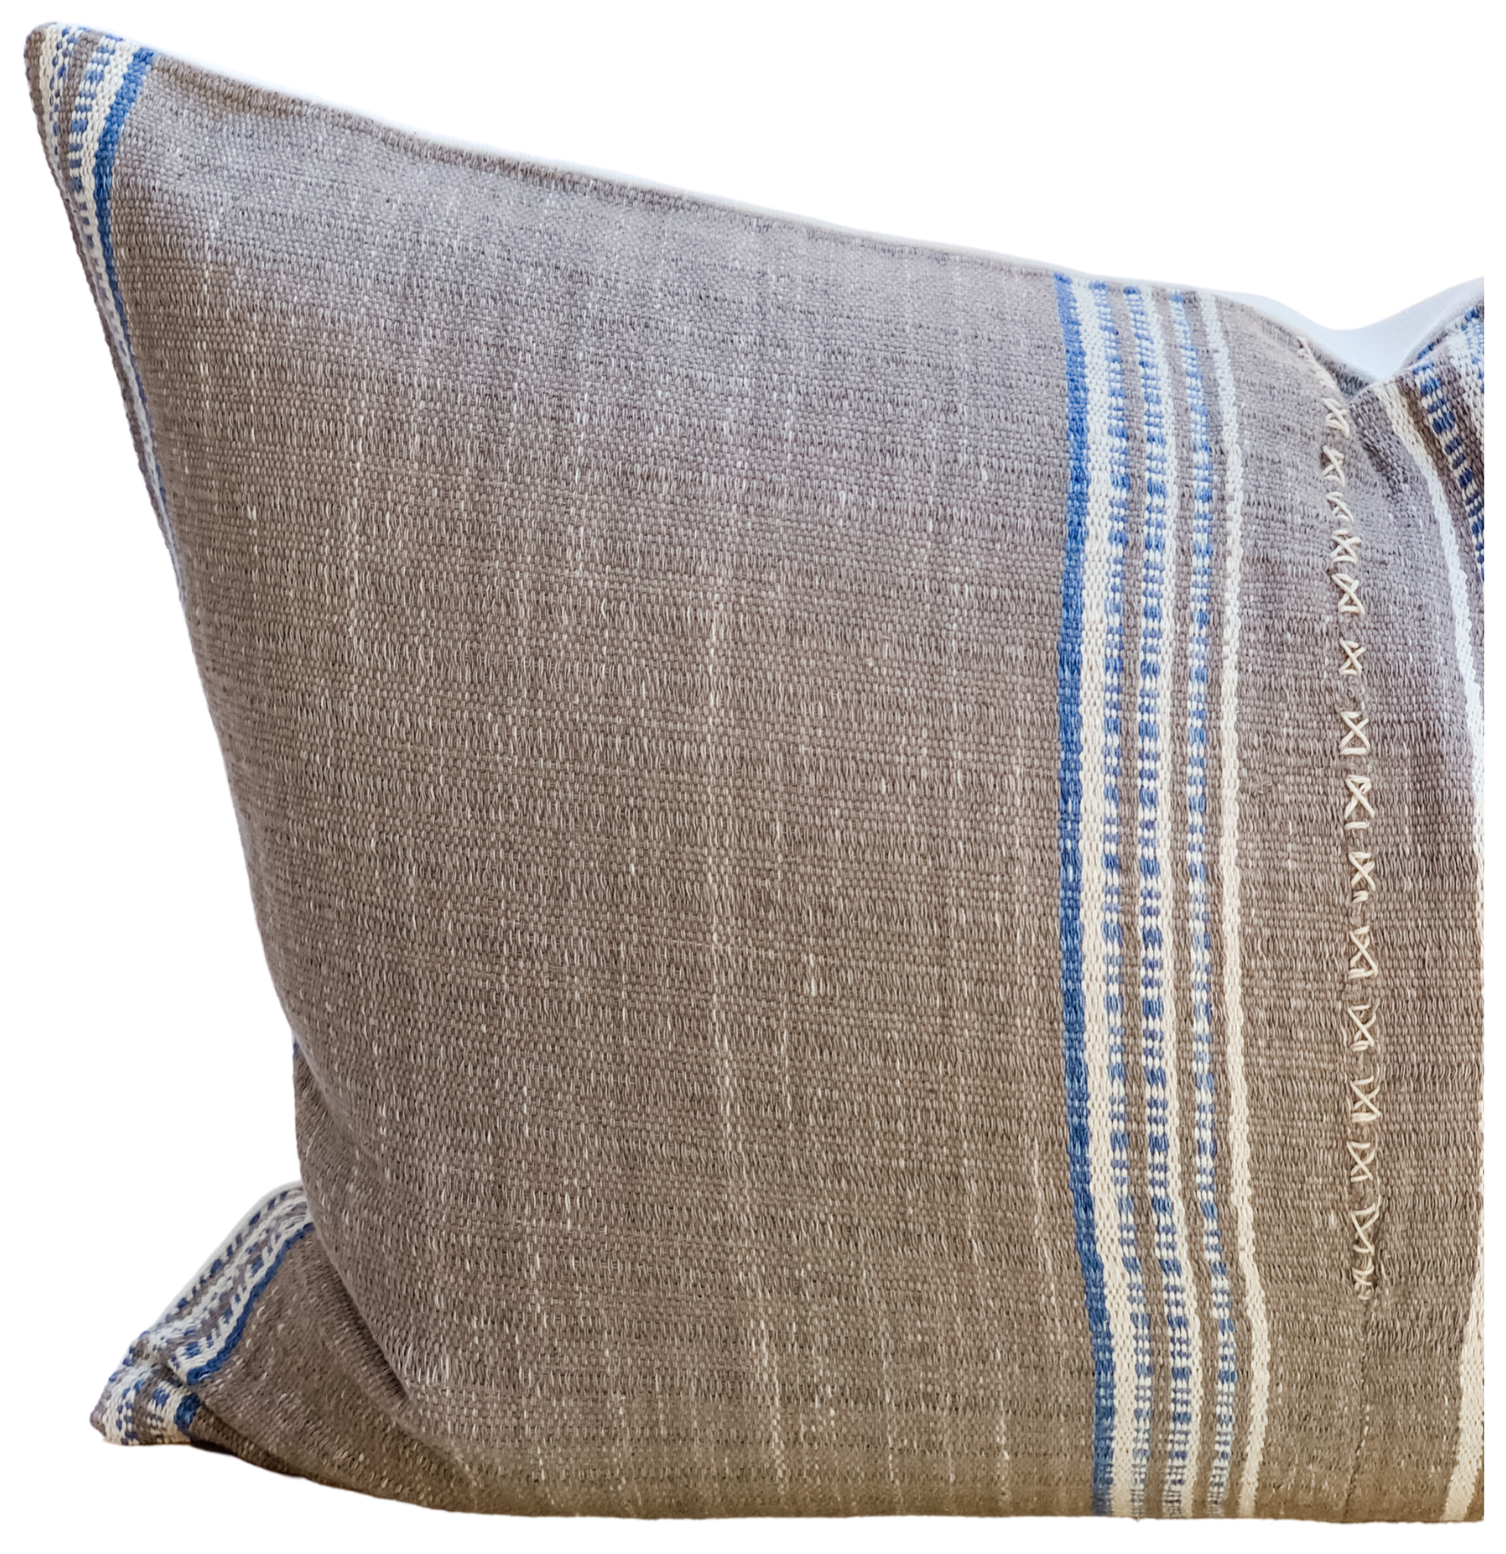 Tilda Handwoven Cotton Pillow Cover - SunCoastSea